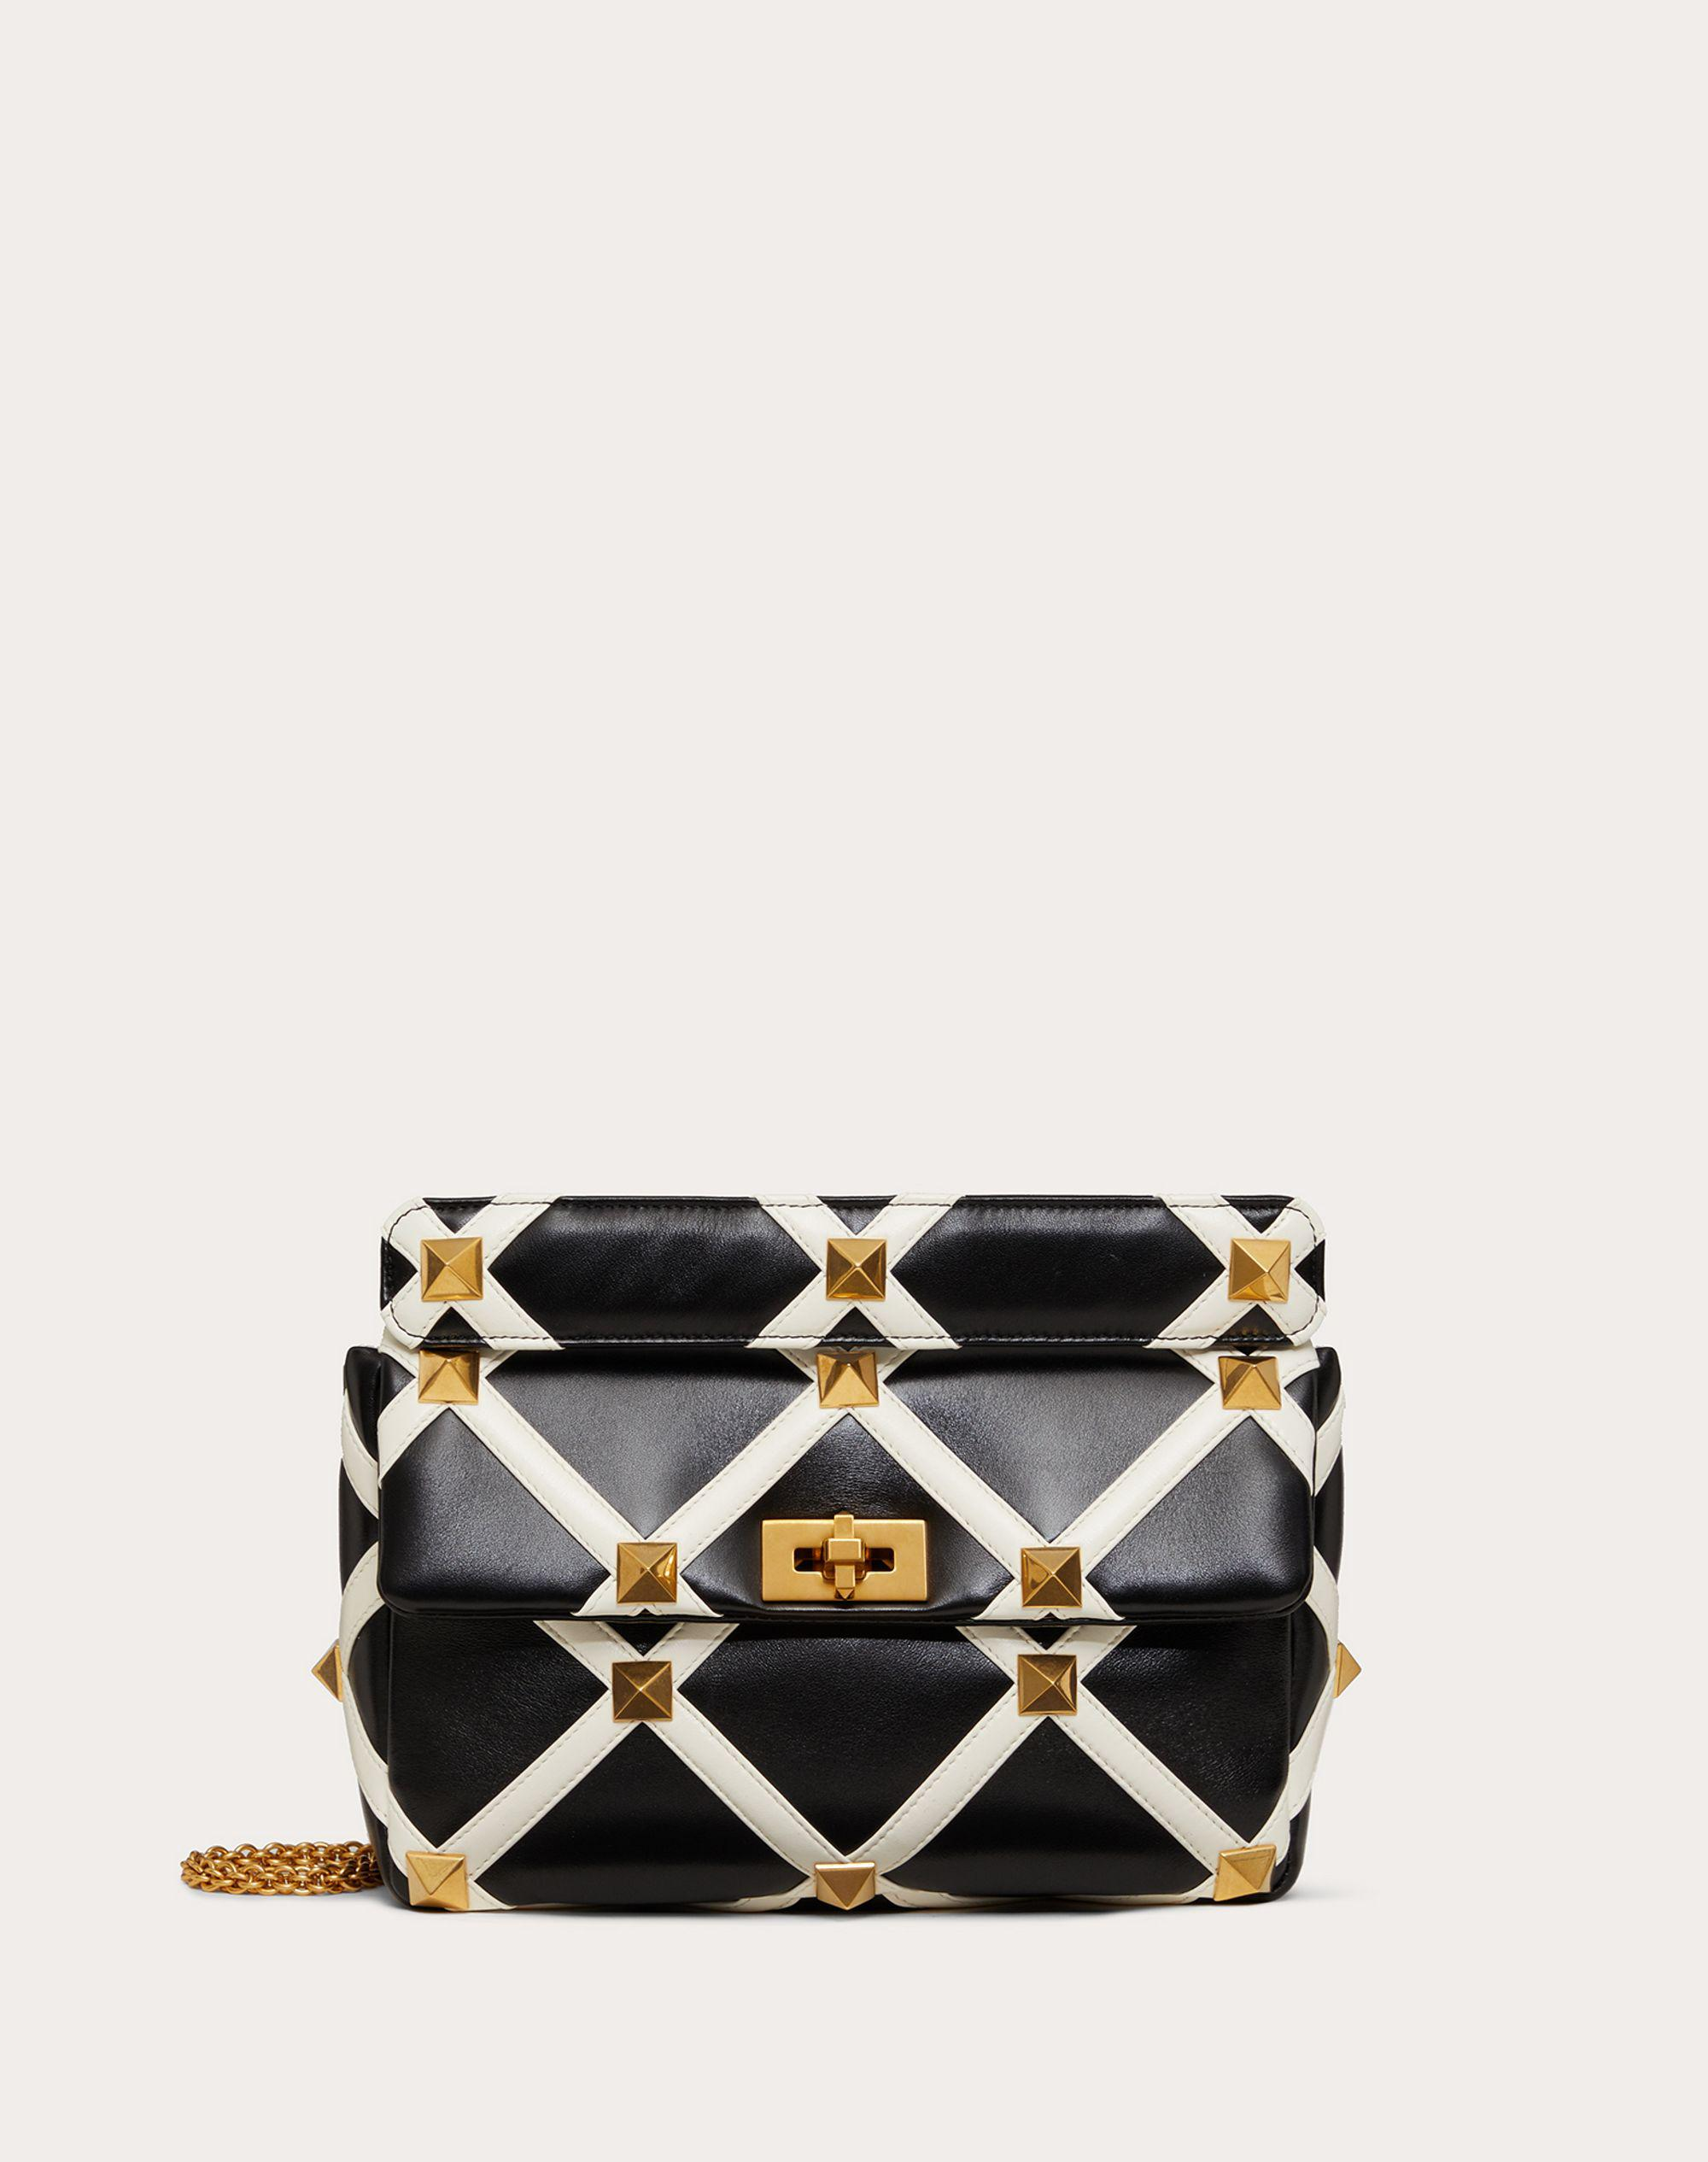 Large Roman Stud The Shoulder Bag in Nappa with Grid Detailing